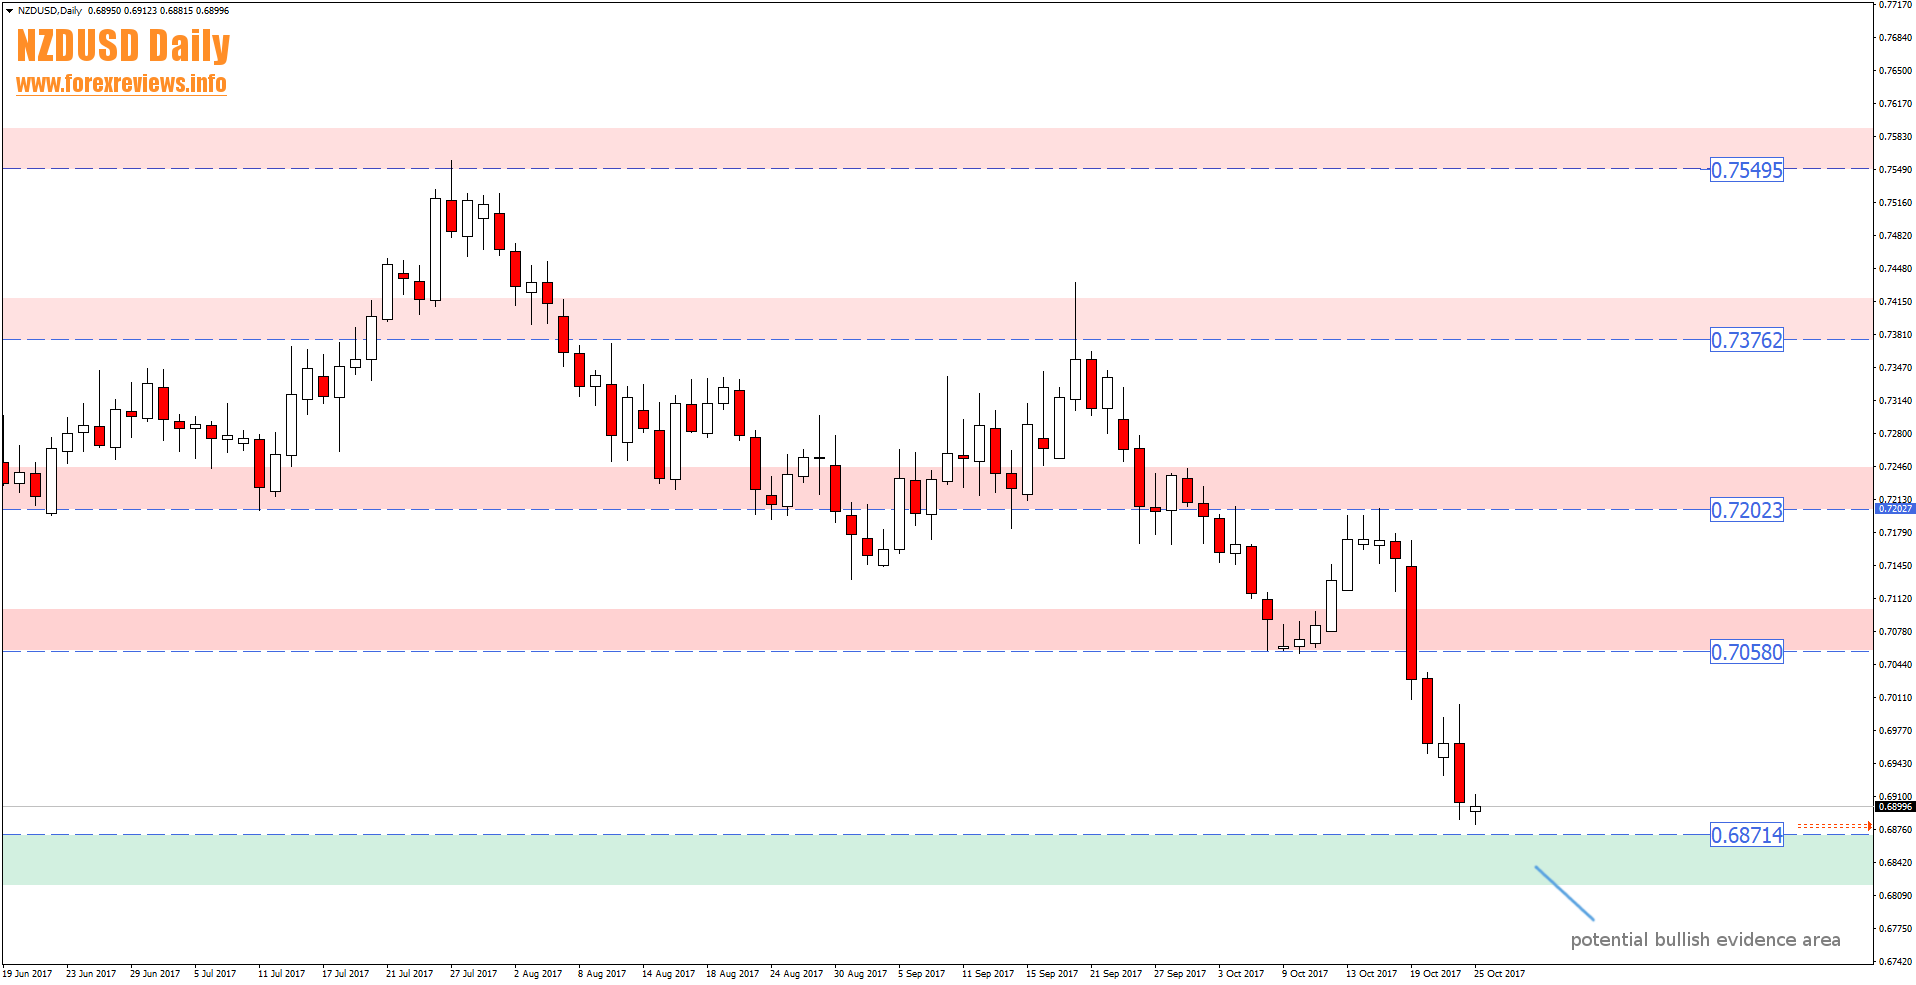 NZDUSD daily trading areas